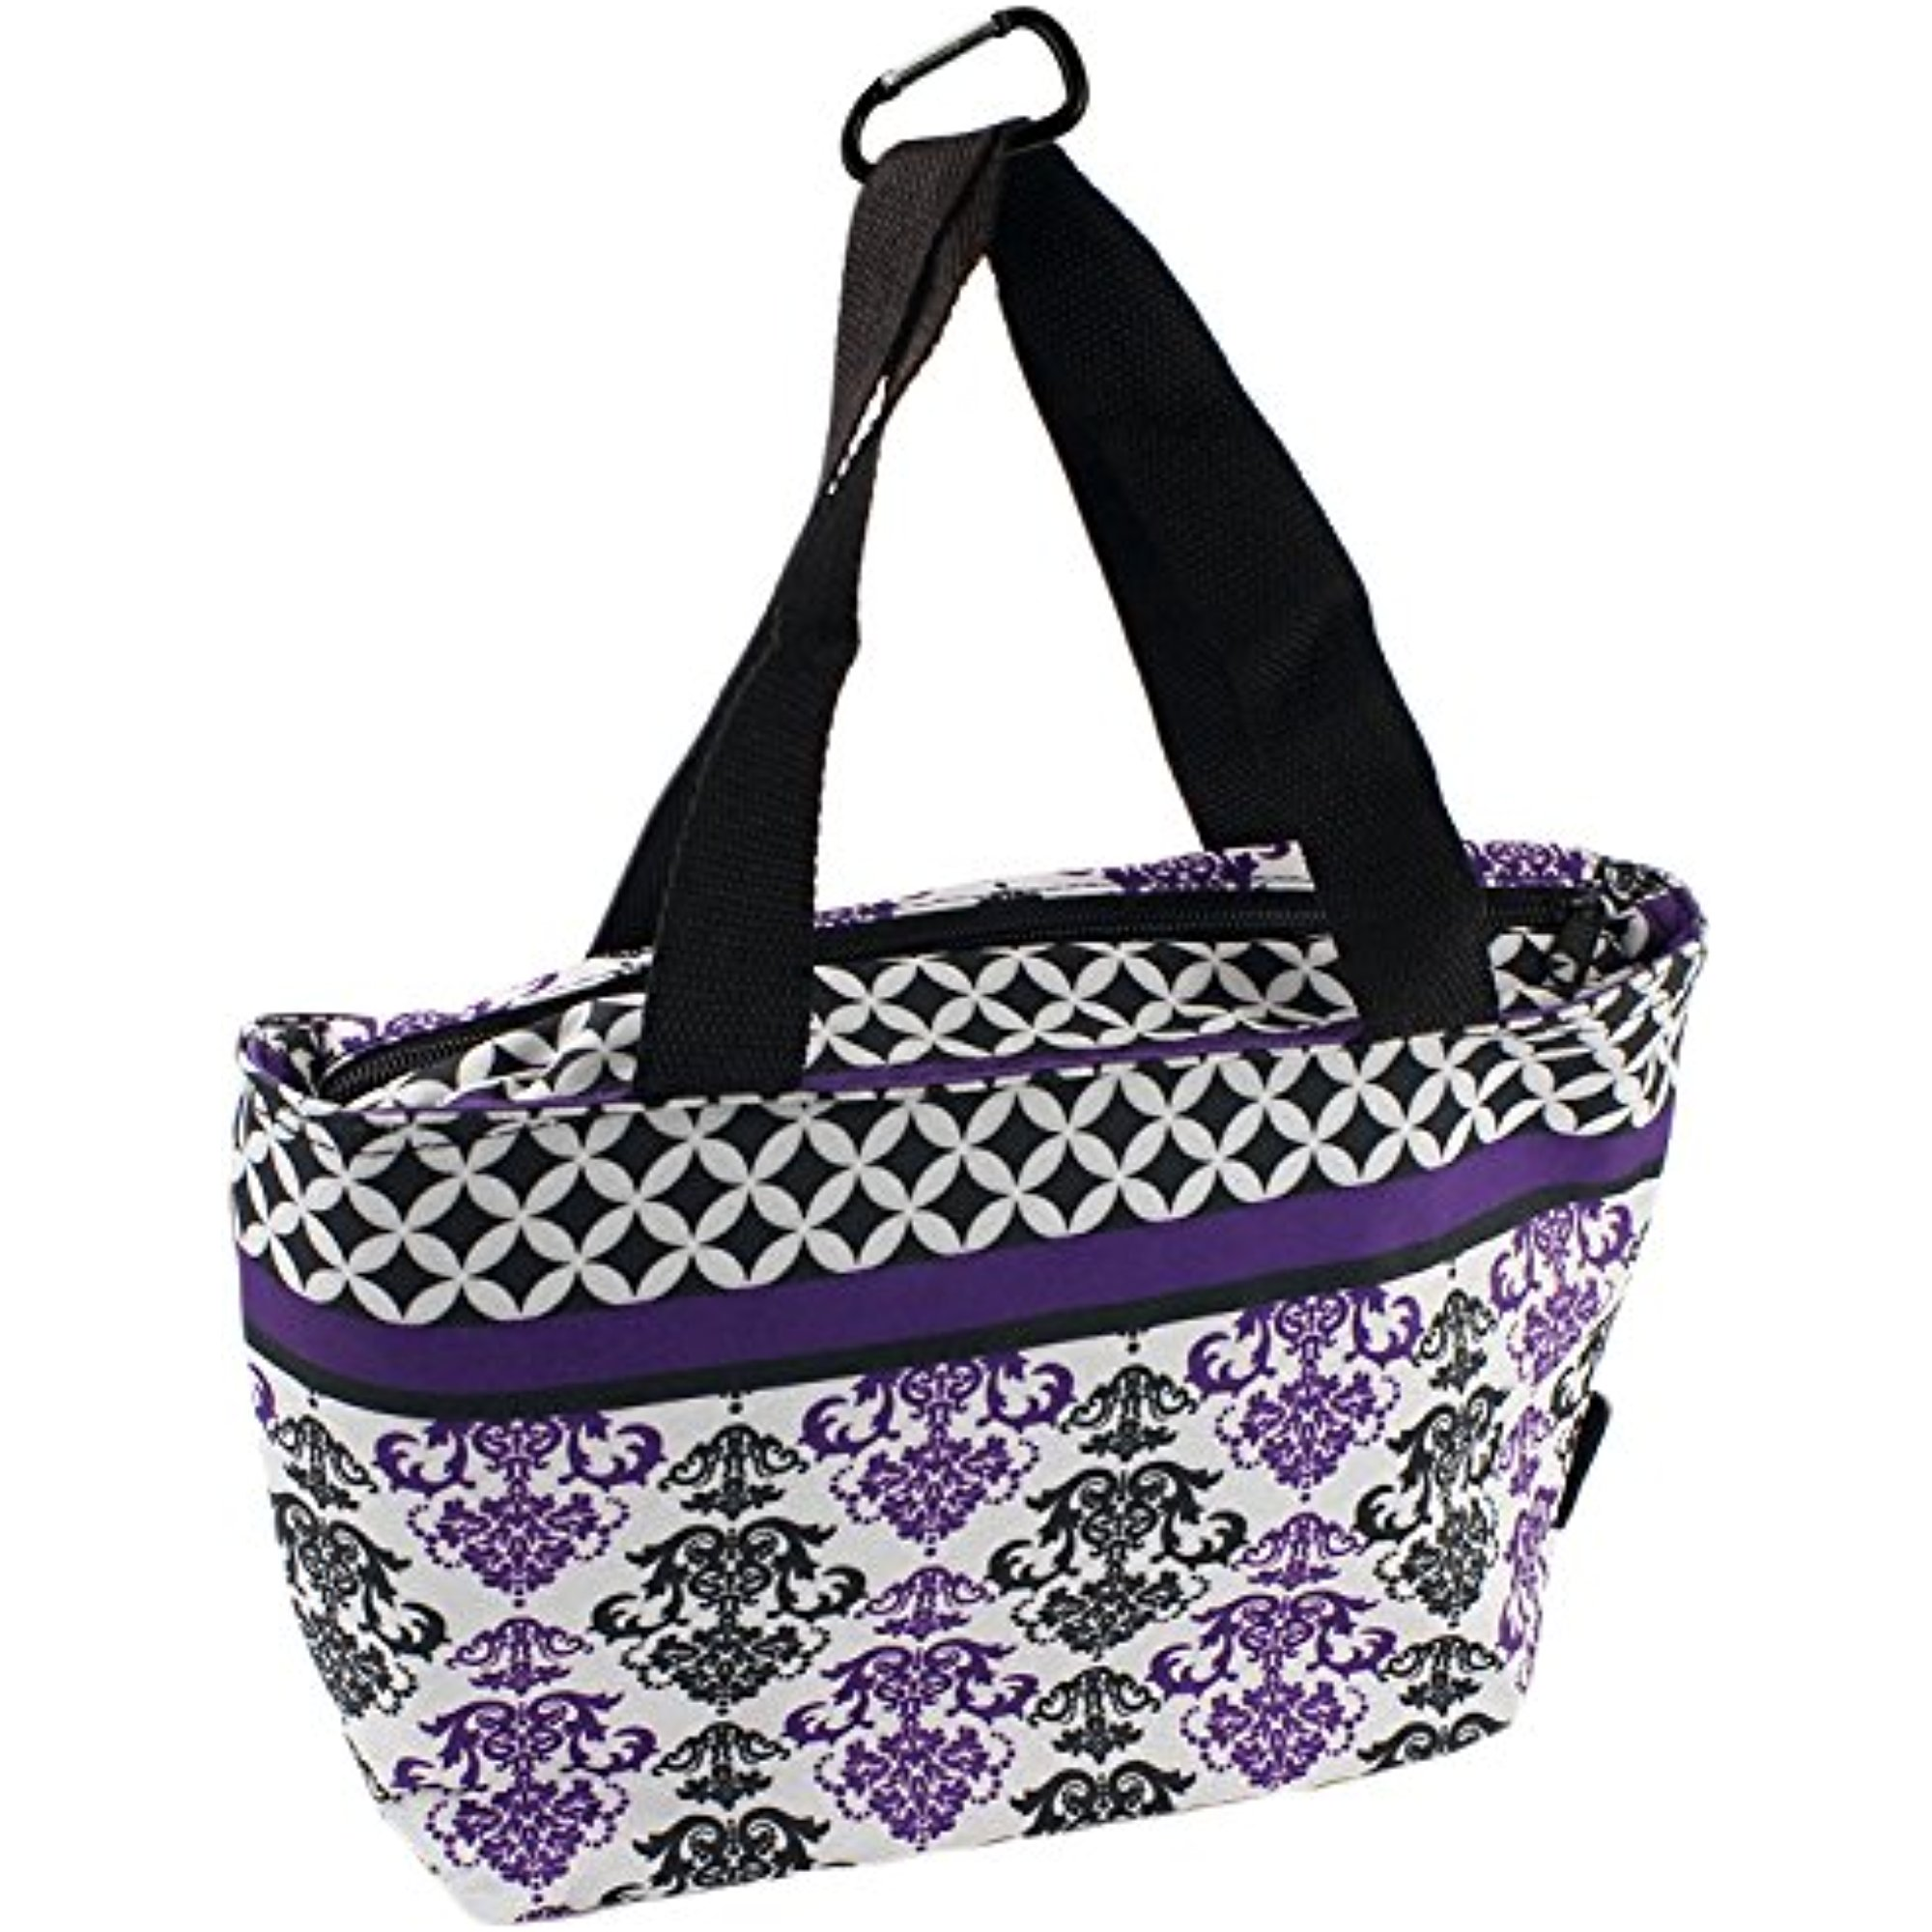 On-The-Go Soft-Sided Insulated Lunch Tote Bag with Handles by bogo Brands (Purple)